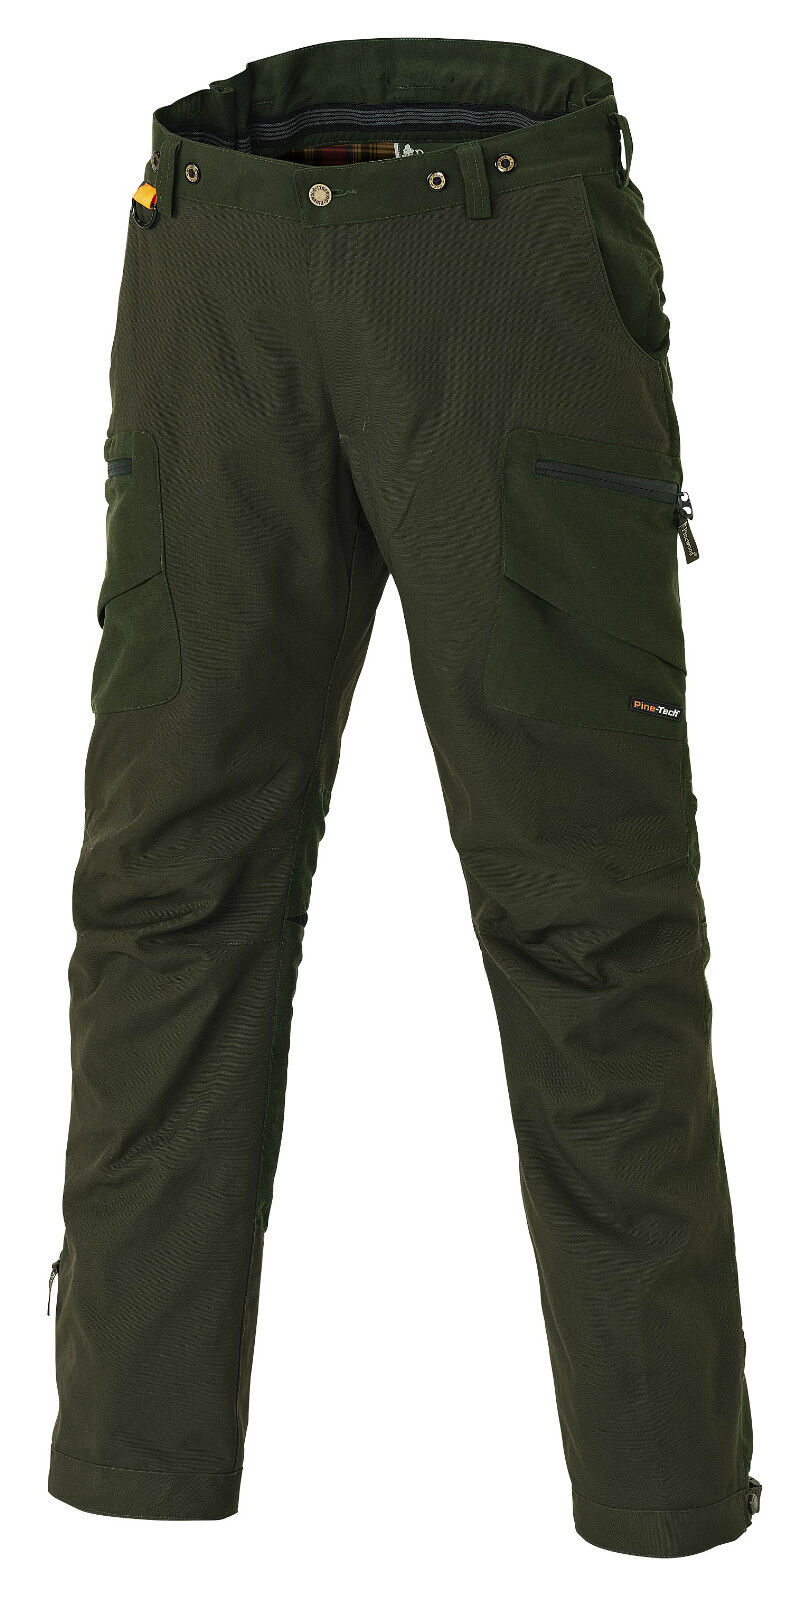 Pinewood Hunting Trousers Hunter Pro Extreme - With Membrane - 7988-149